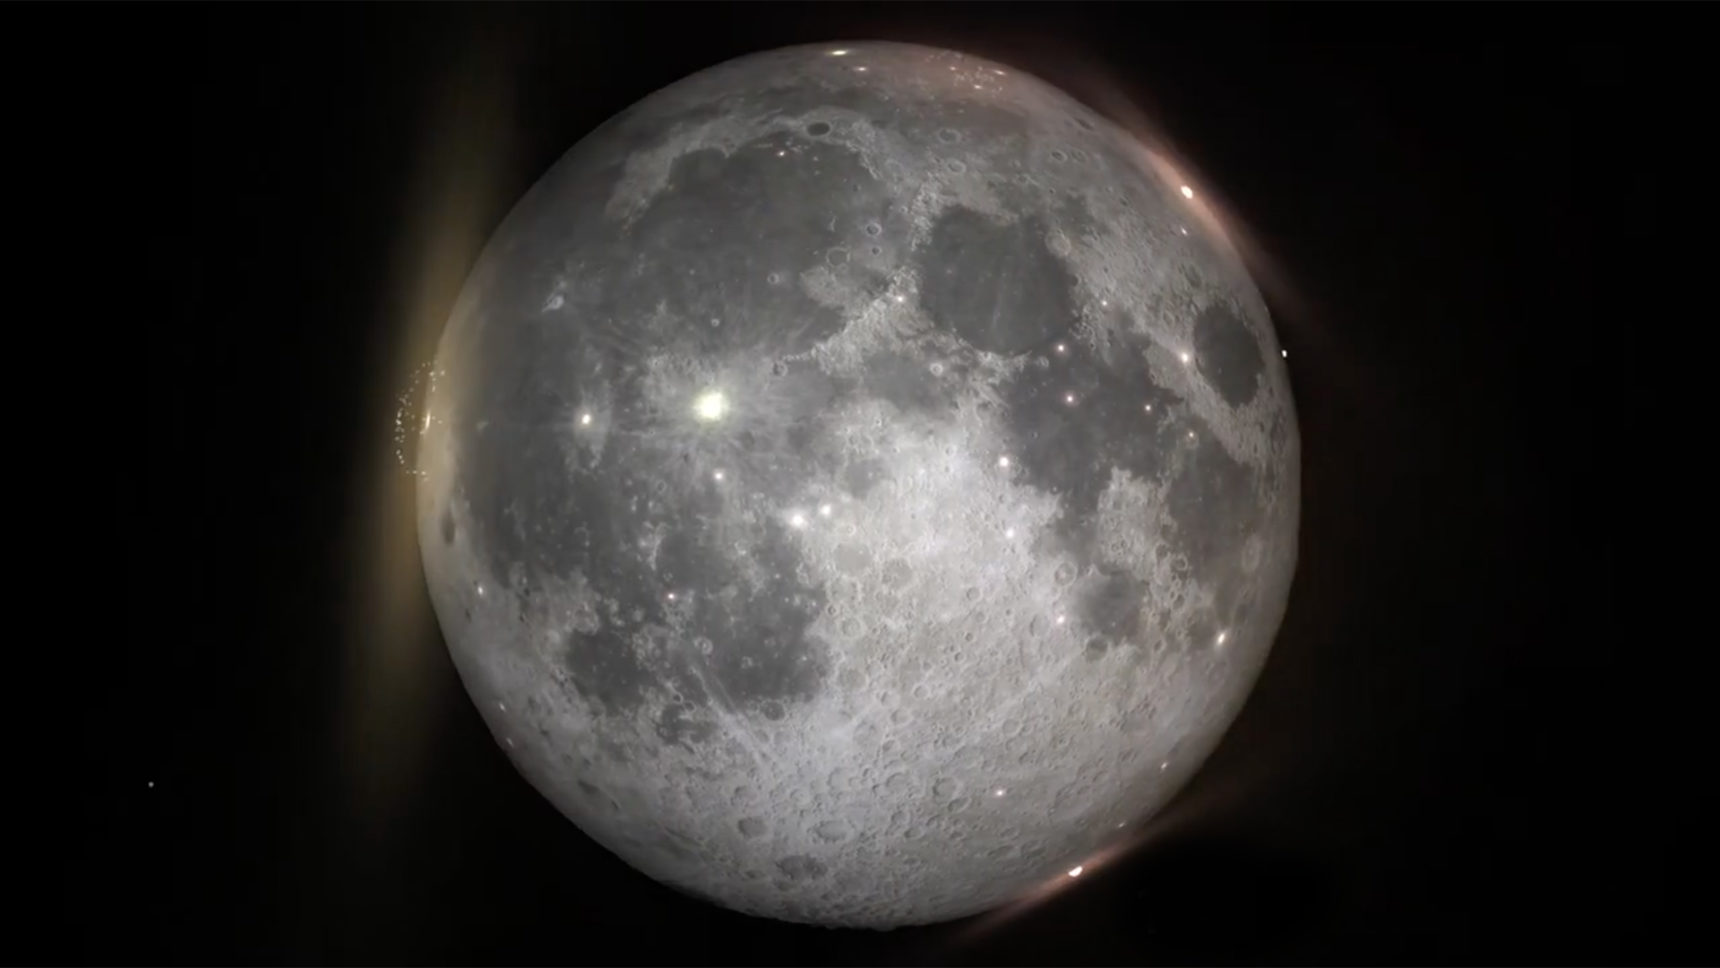 VIDEO: One billion years of lunar impacts compressed into a minute.